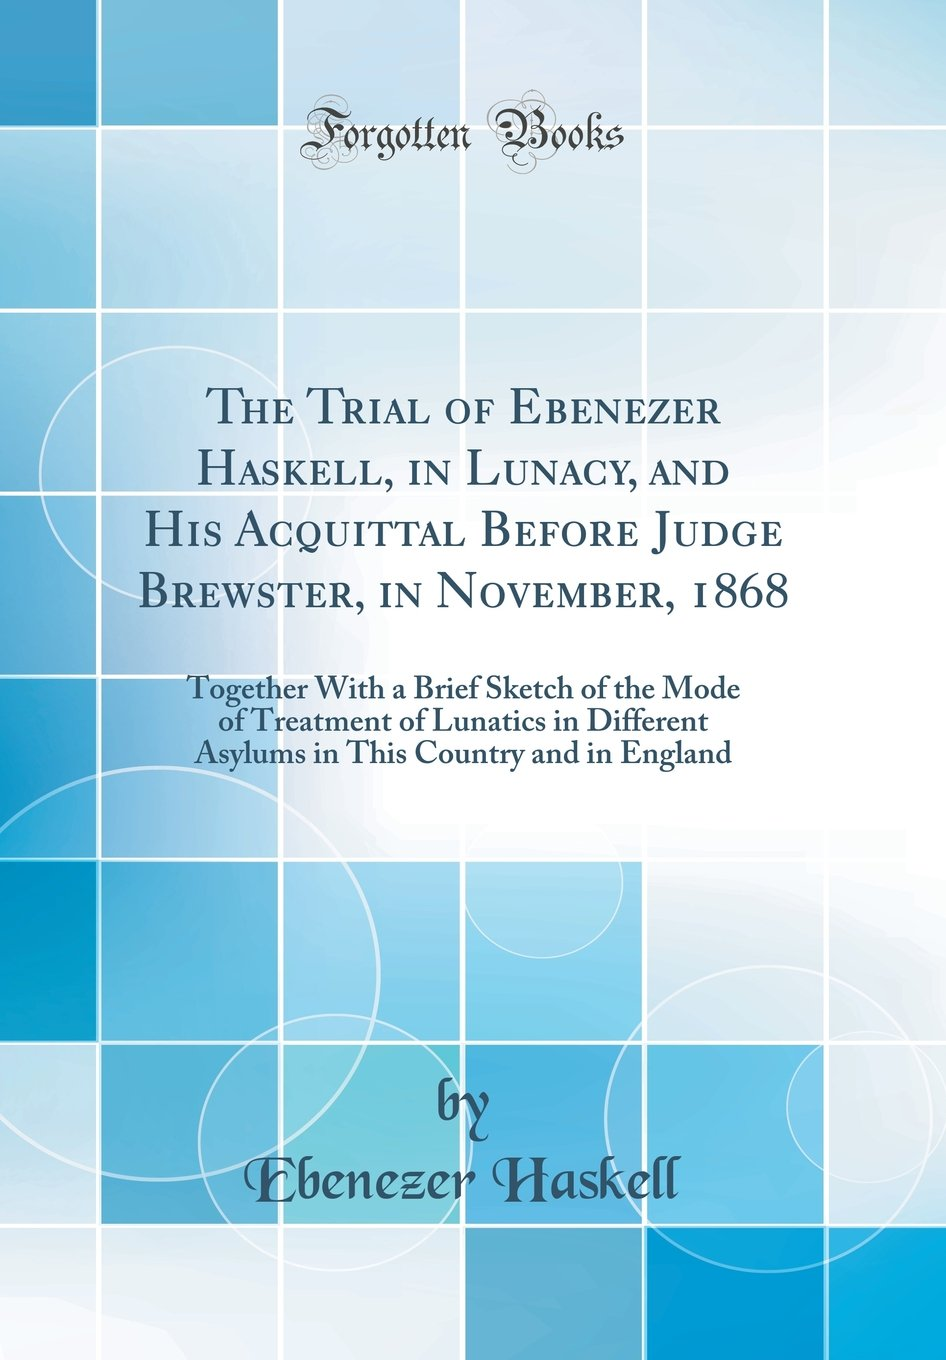 The Trial of Ebenezer Haskell, in Lunacy, and His Acquittal